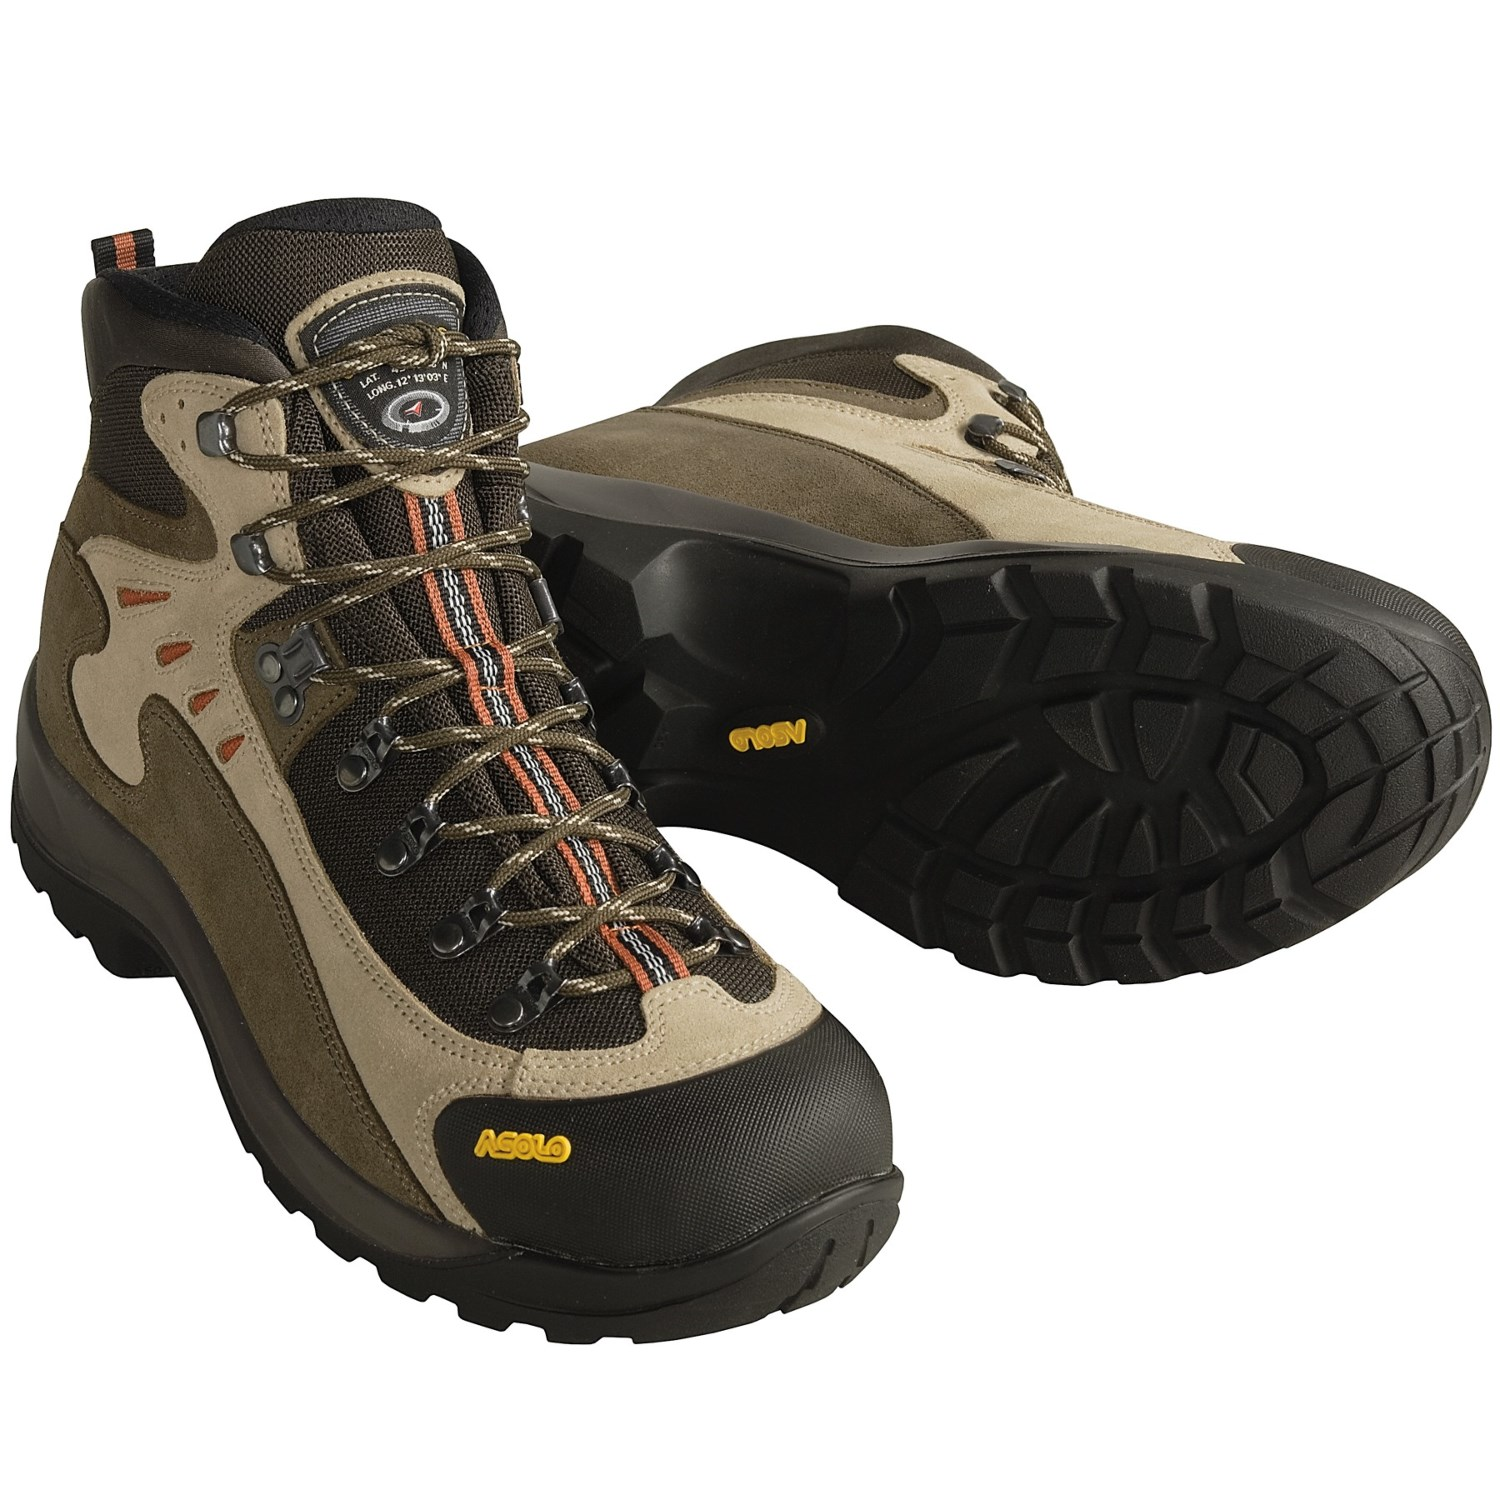 Asolo Fsn 85 Hiking Boots For Men Save 39